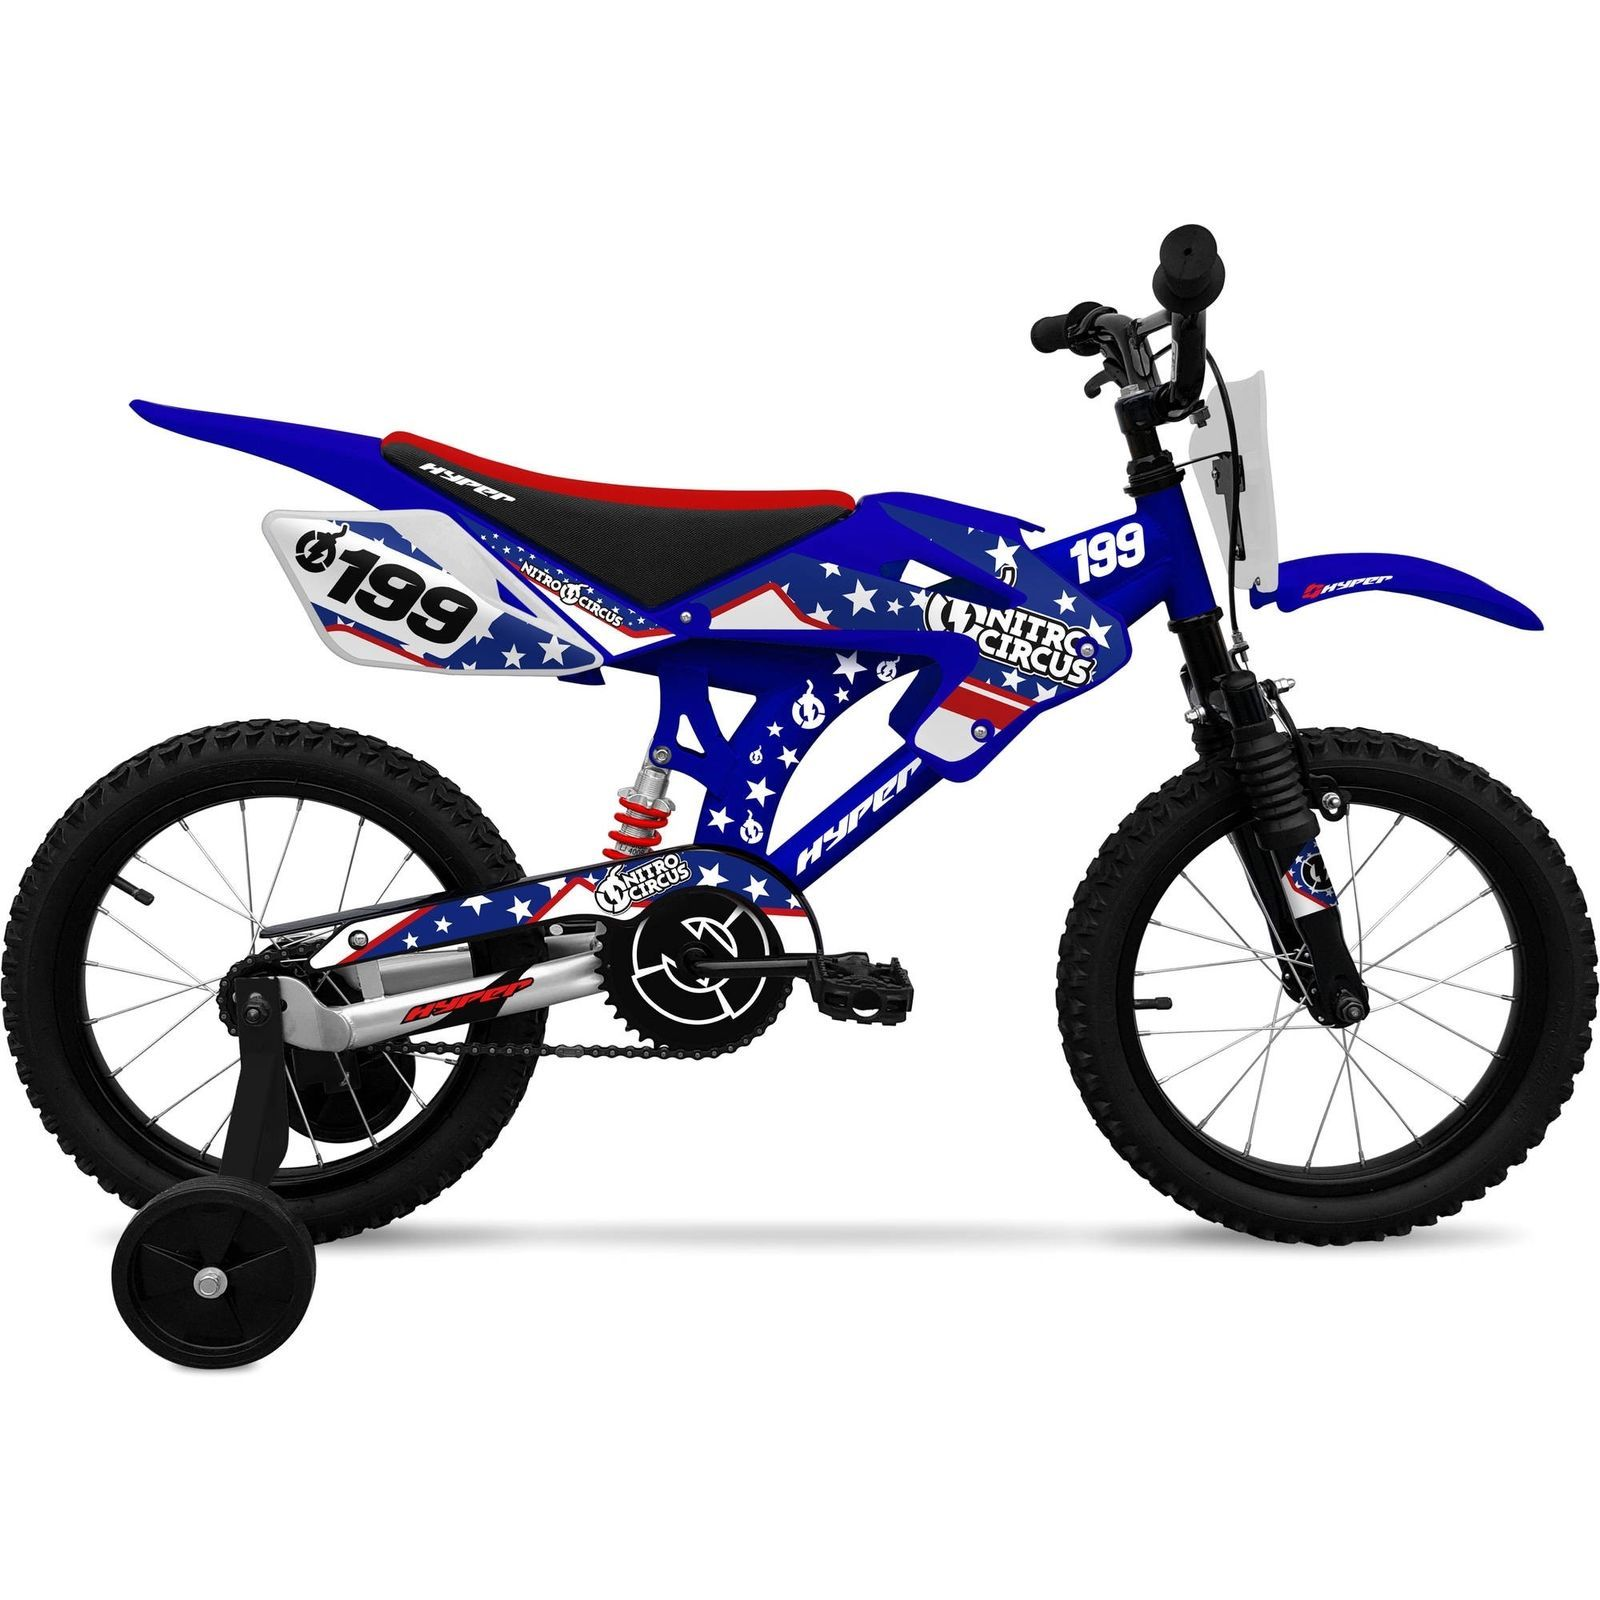 Boys Hyper 16 Nitro Circus Motobike Kids Bike Blue With Training